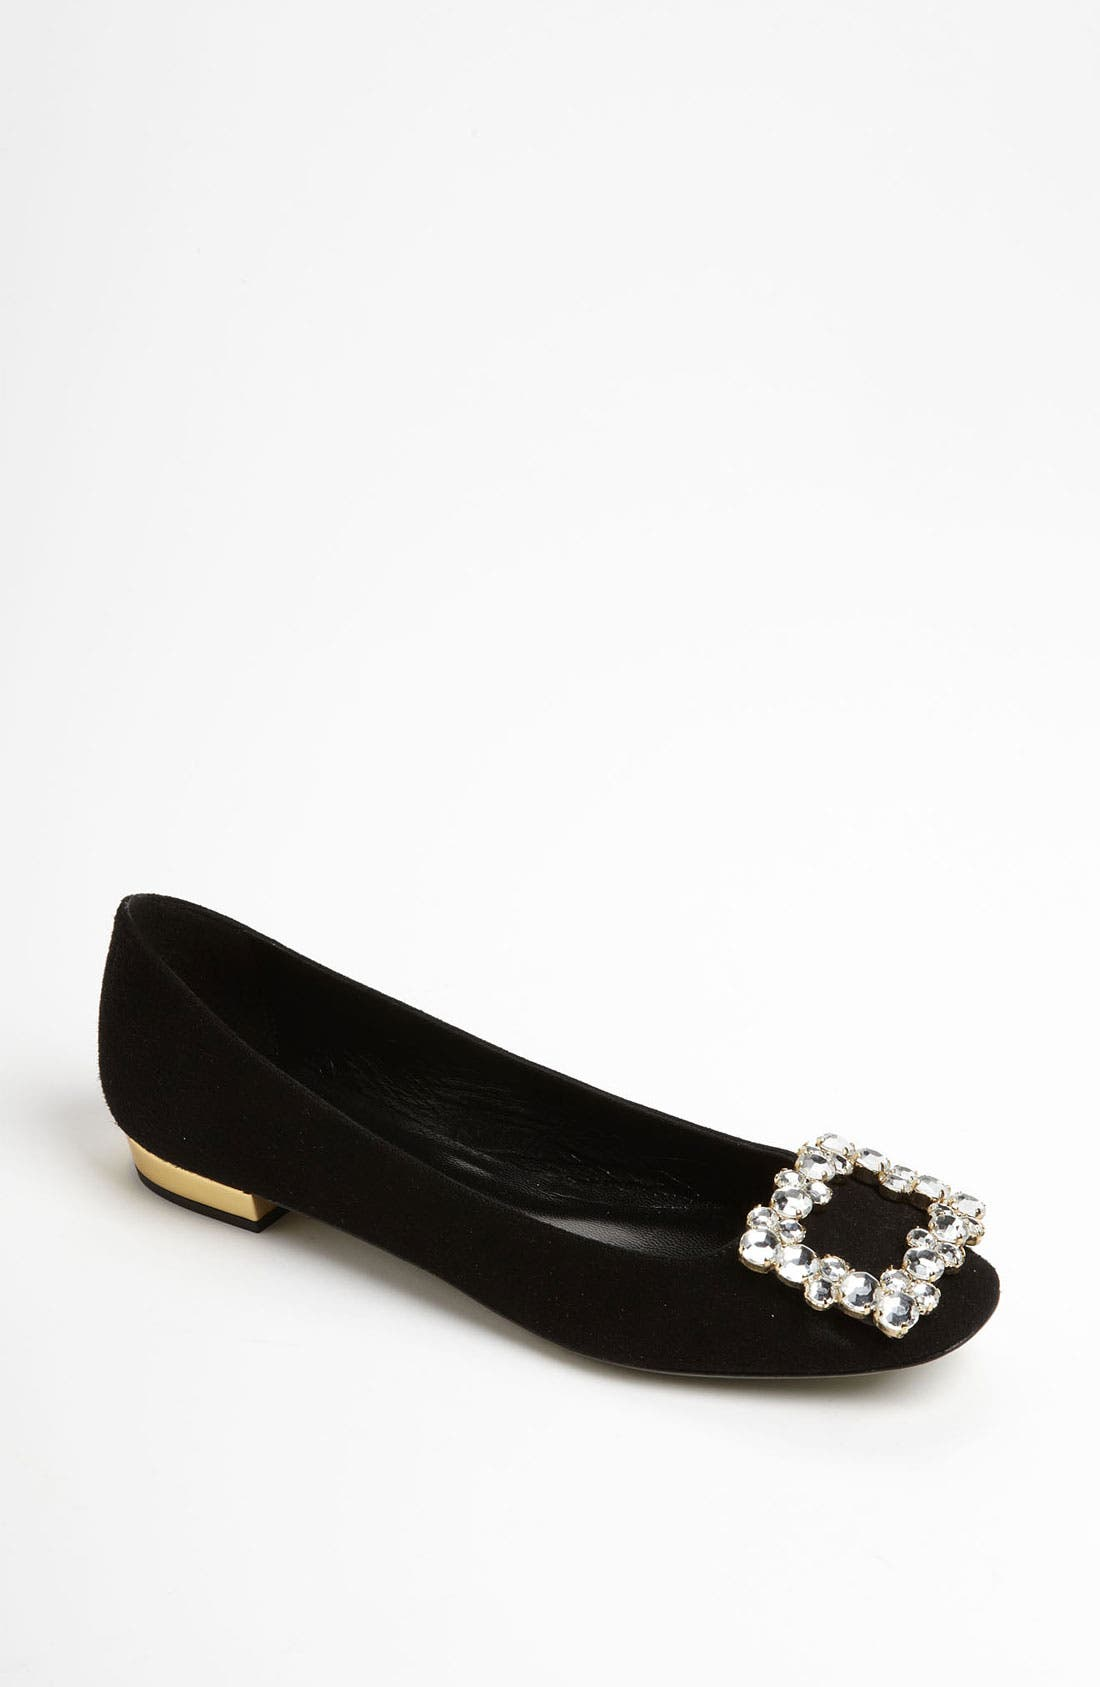 Main Image - kate spade new york 'norella' flat